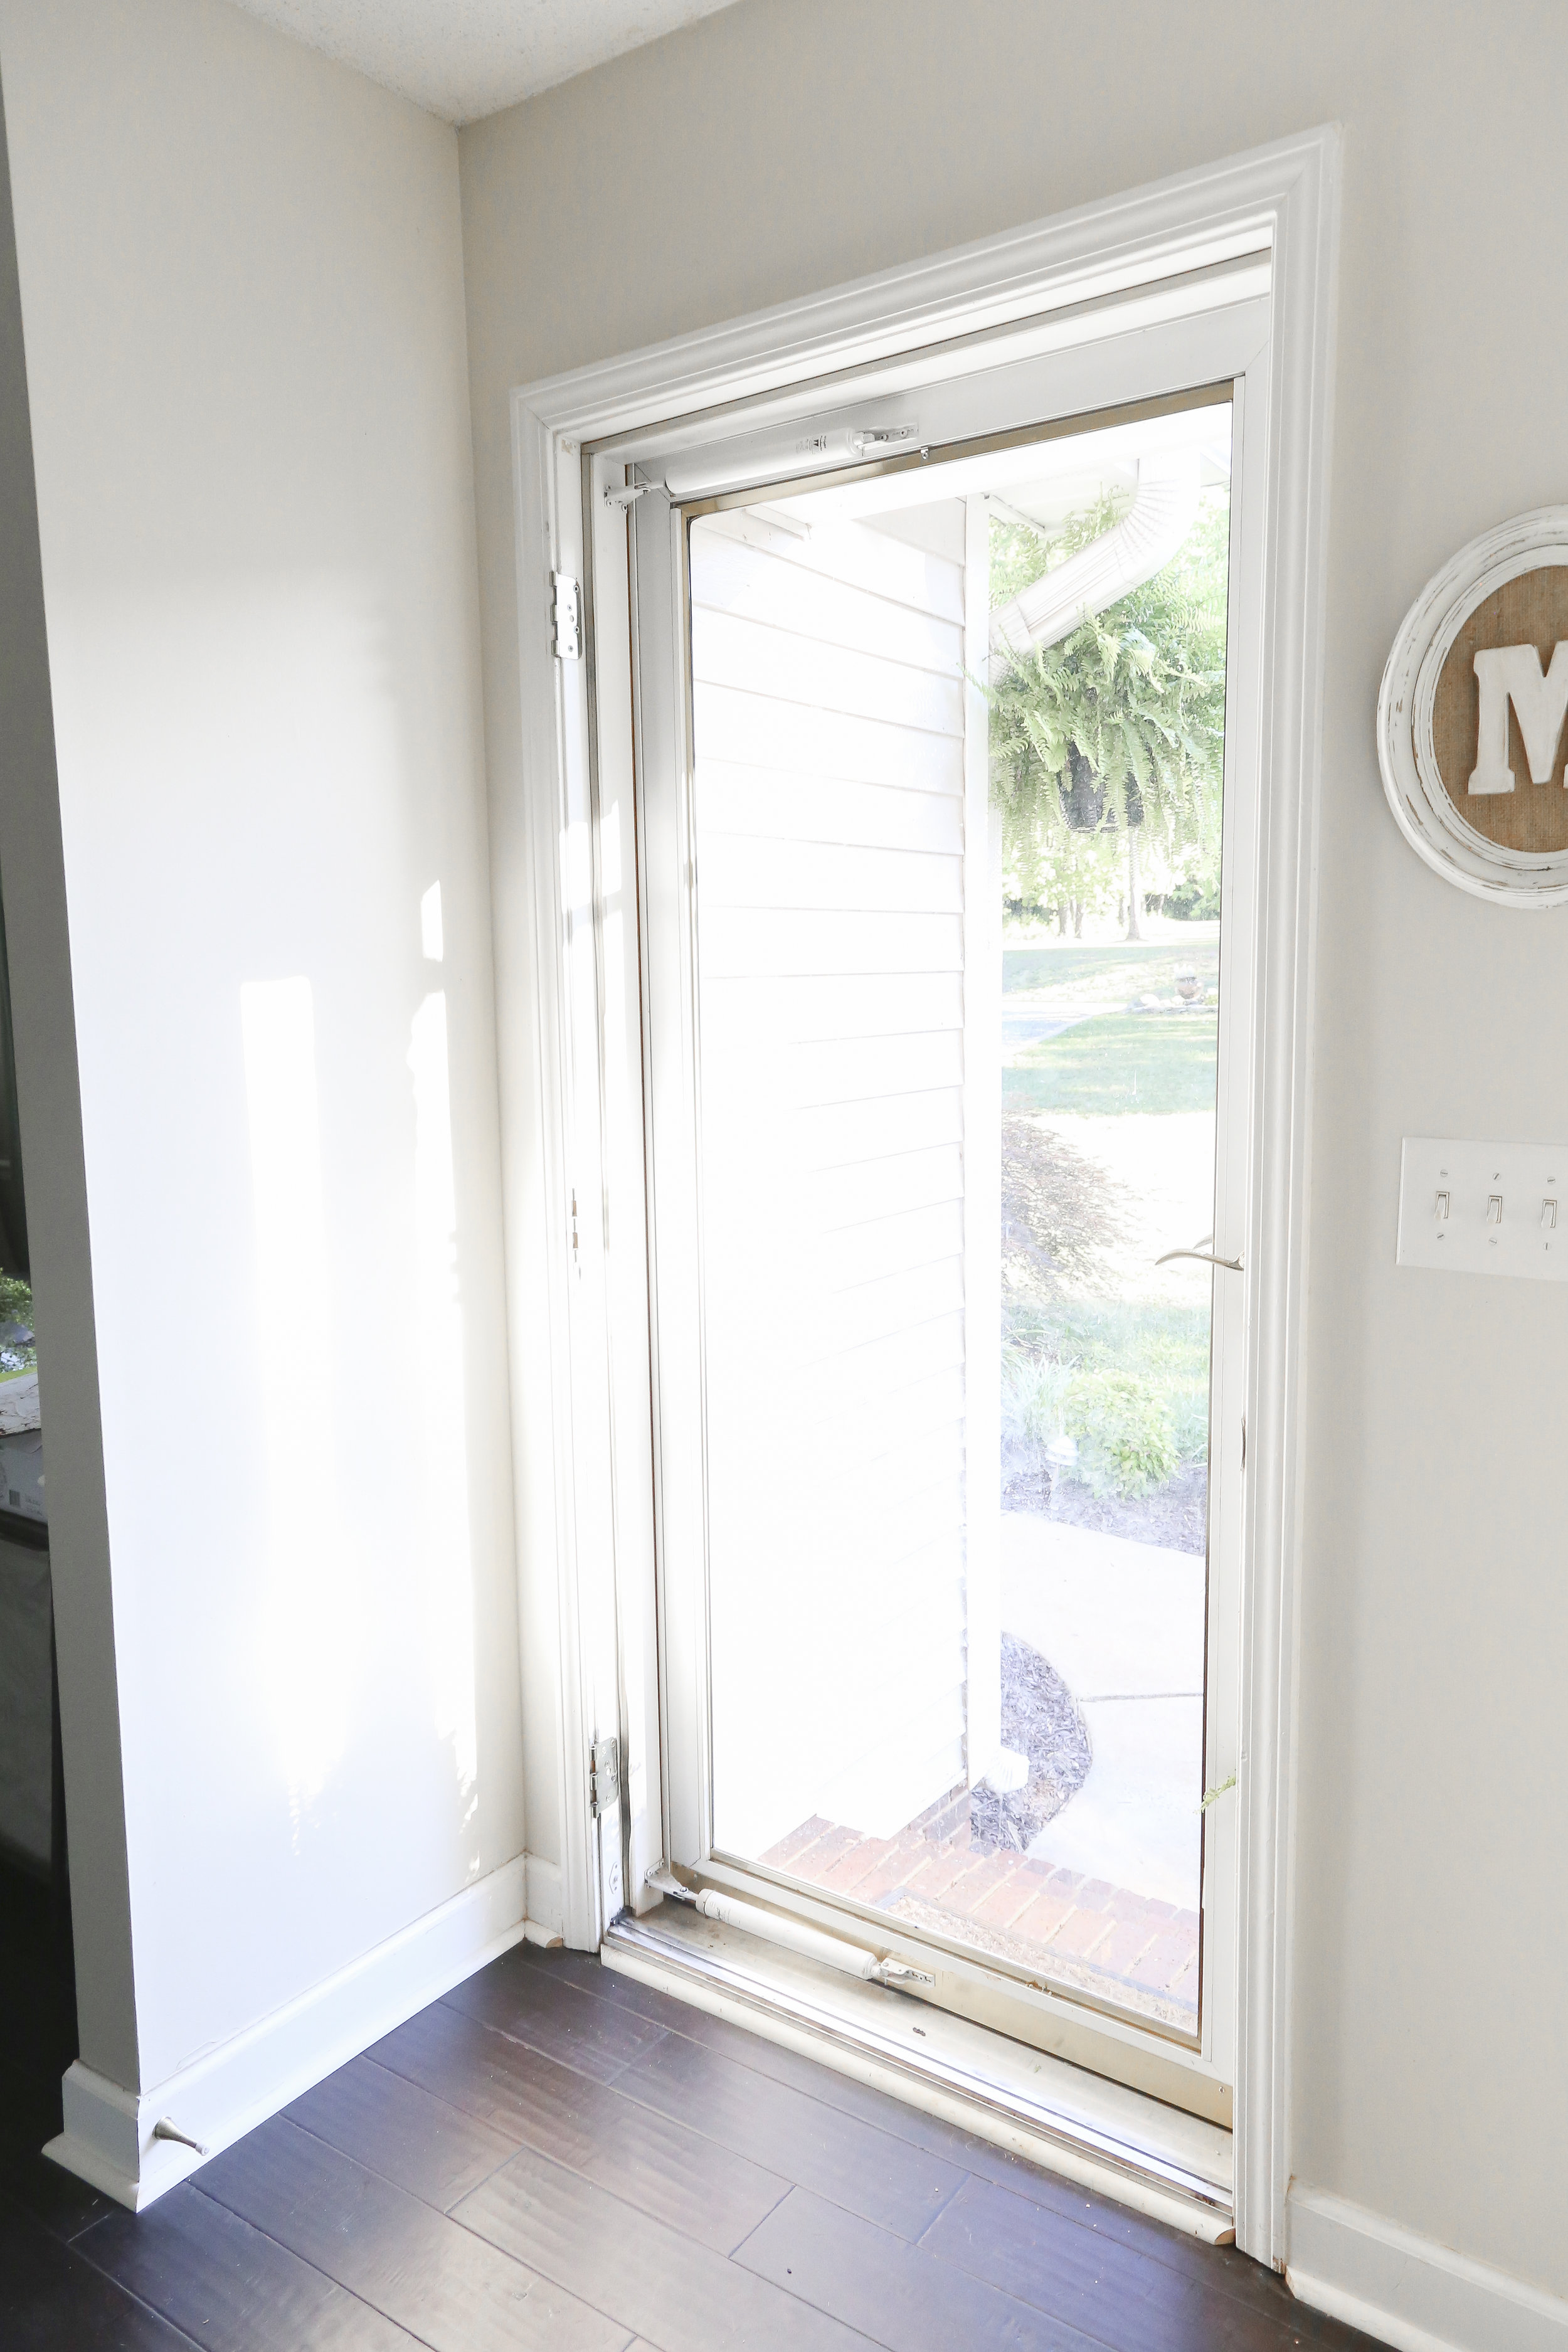 How to install a exterior front door: removing the existing door.